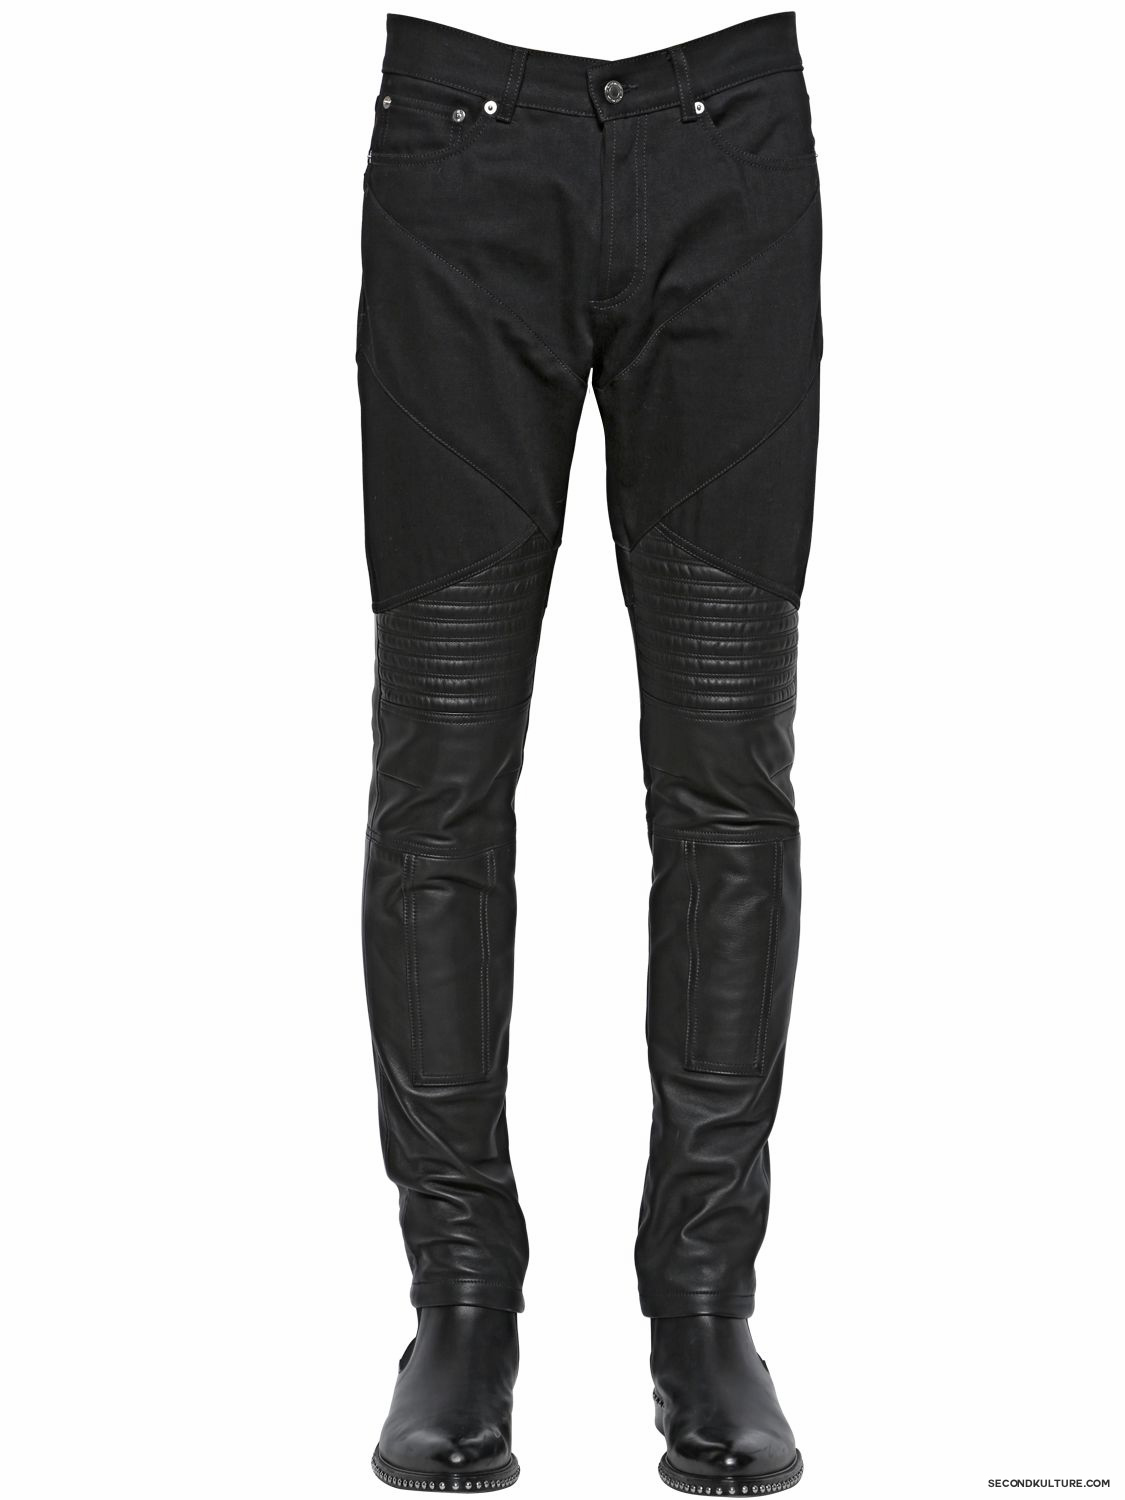 Givenchy-Black-Leather-and-Denim-Ribbed-Panelled-Biker-Jeans-Fall-Winter-2015-1